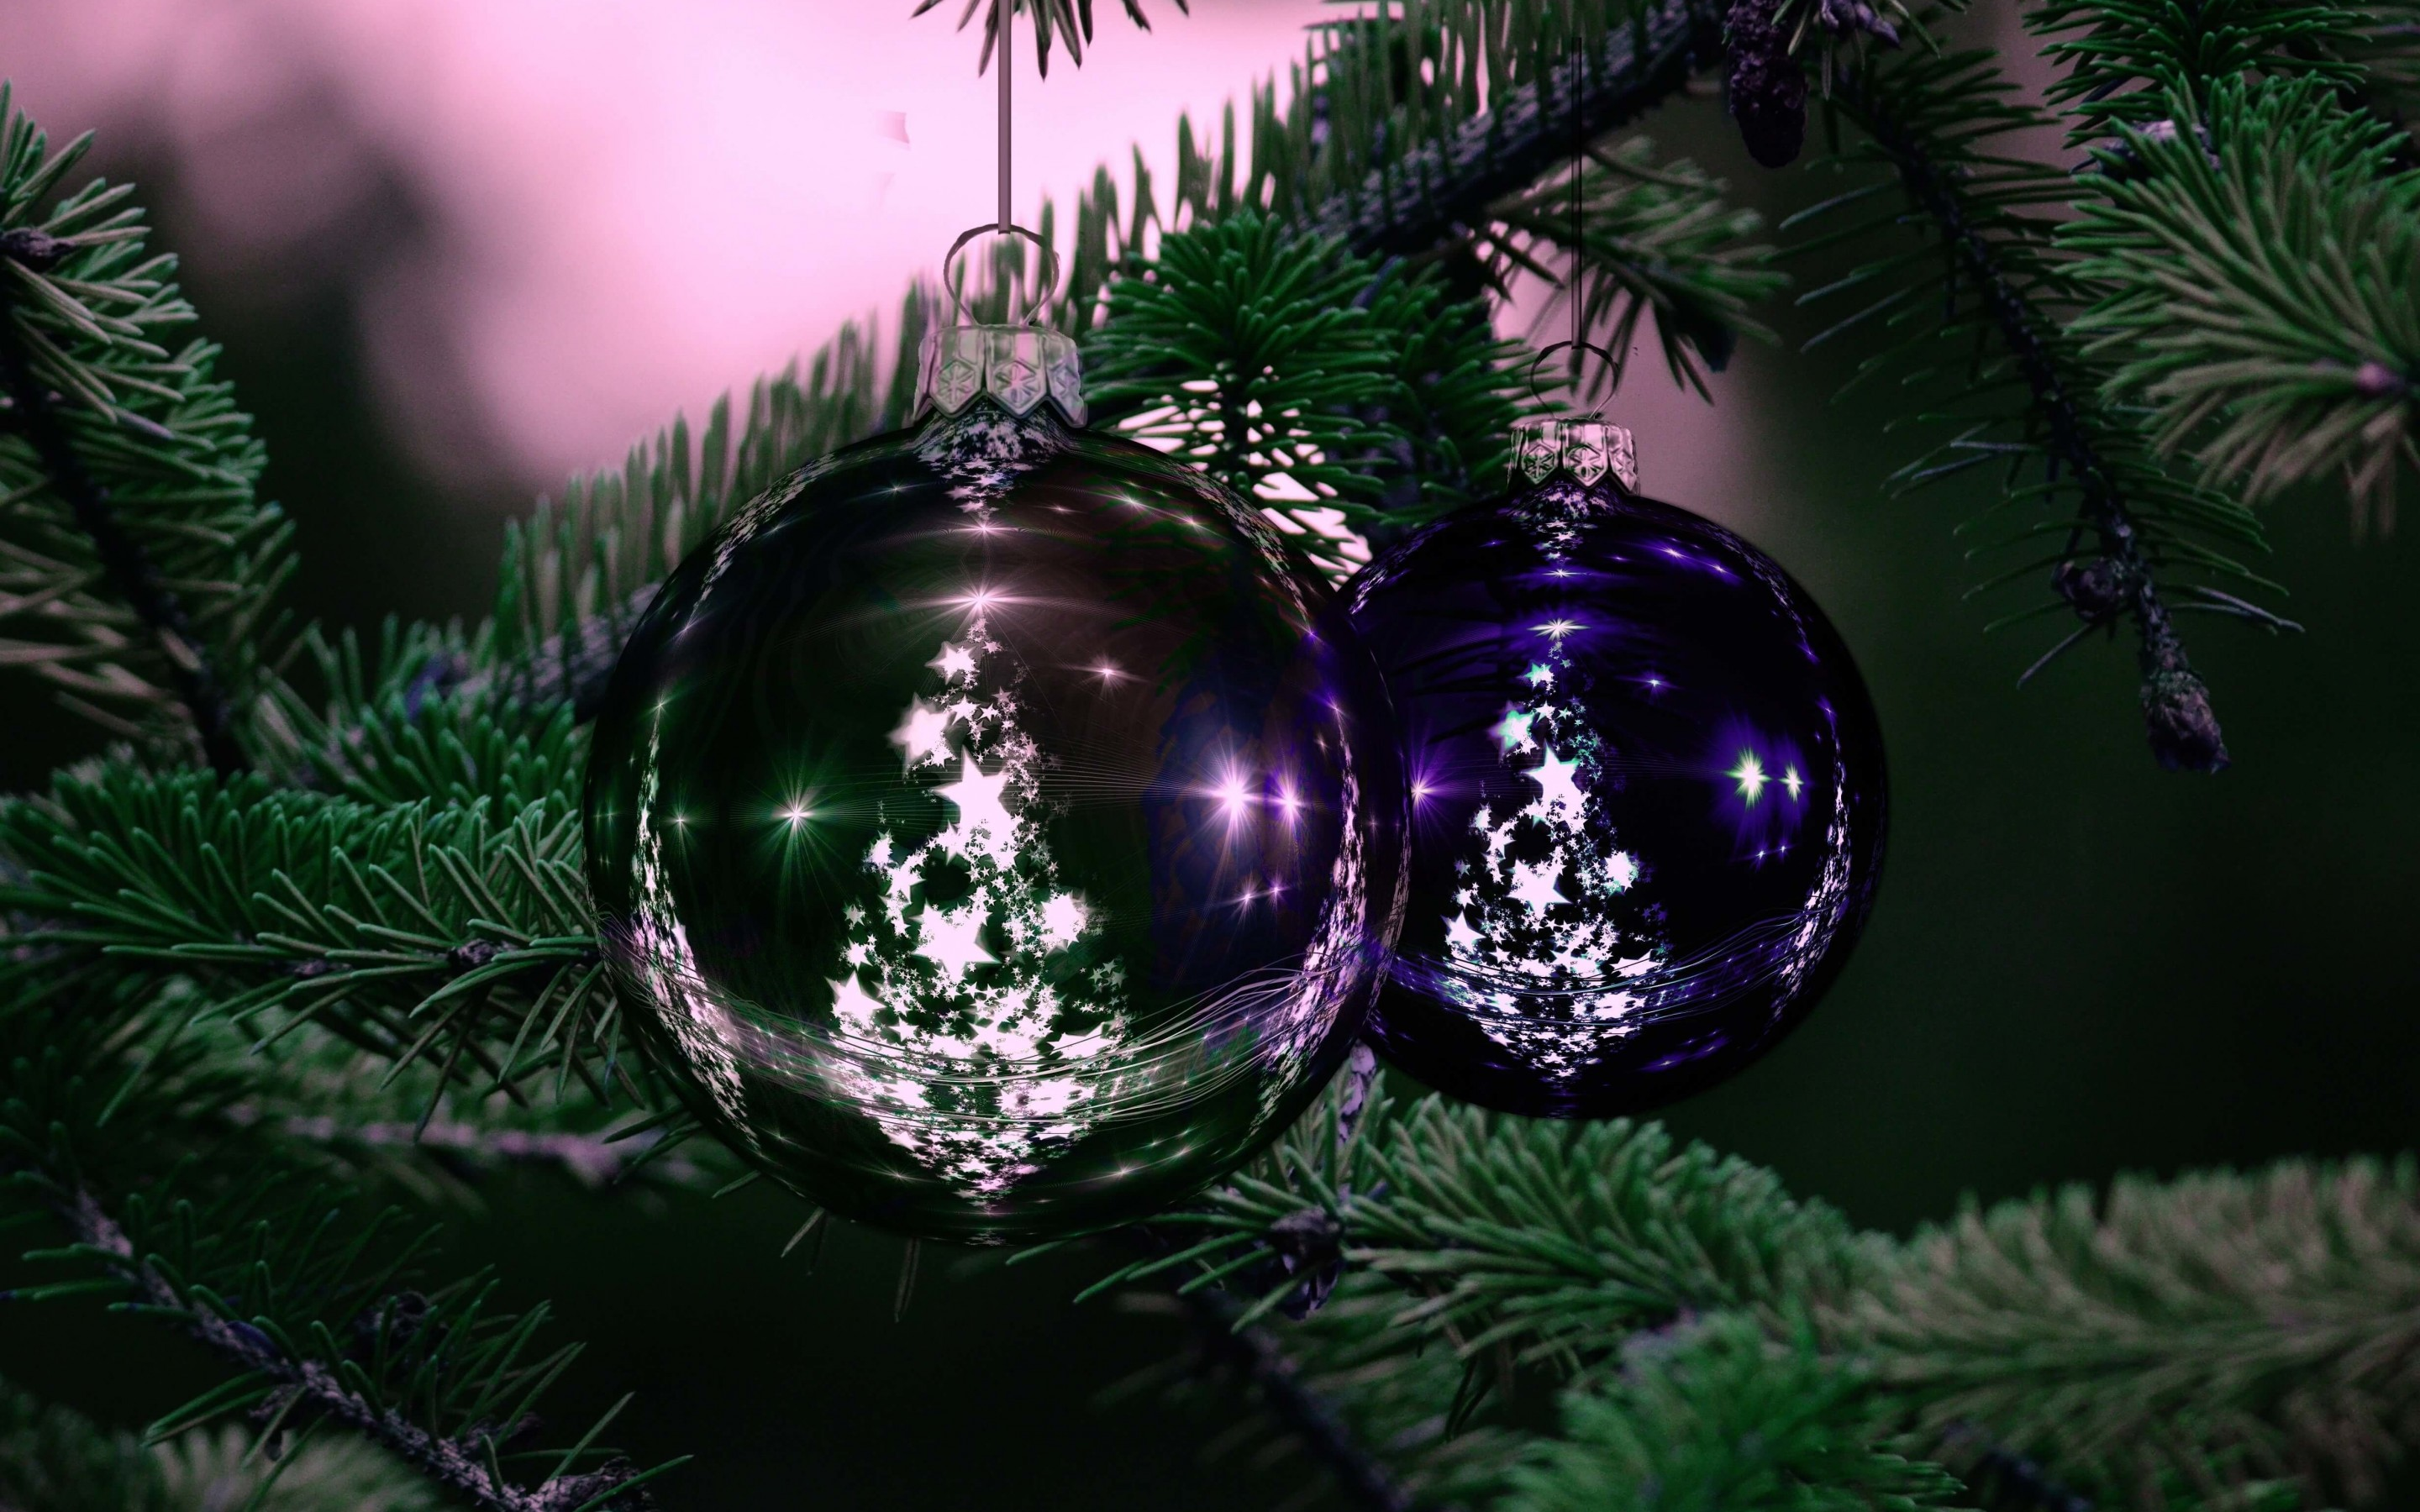 Beautiful Christmas Tree Ornaments Wallpaper for Desktop 2880x1800